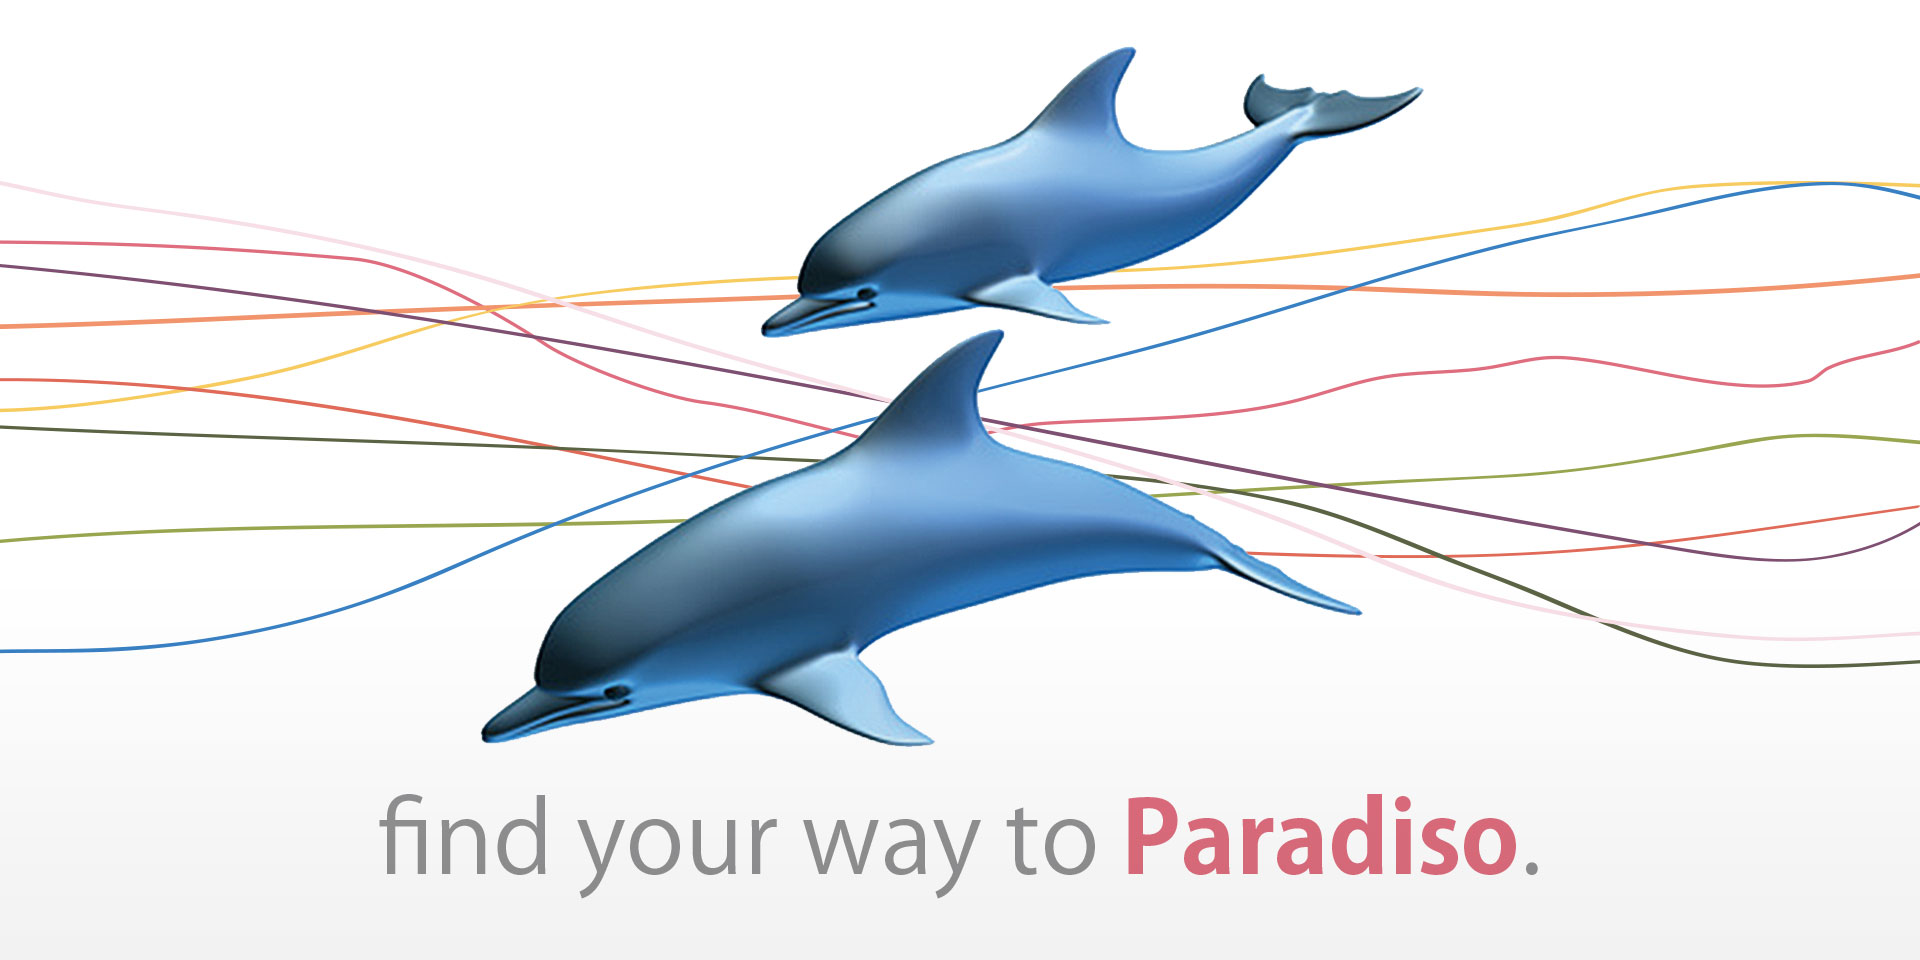 find your way to paradiso